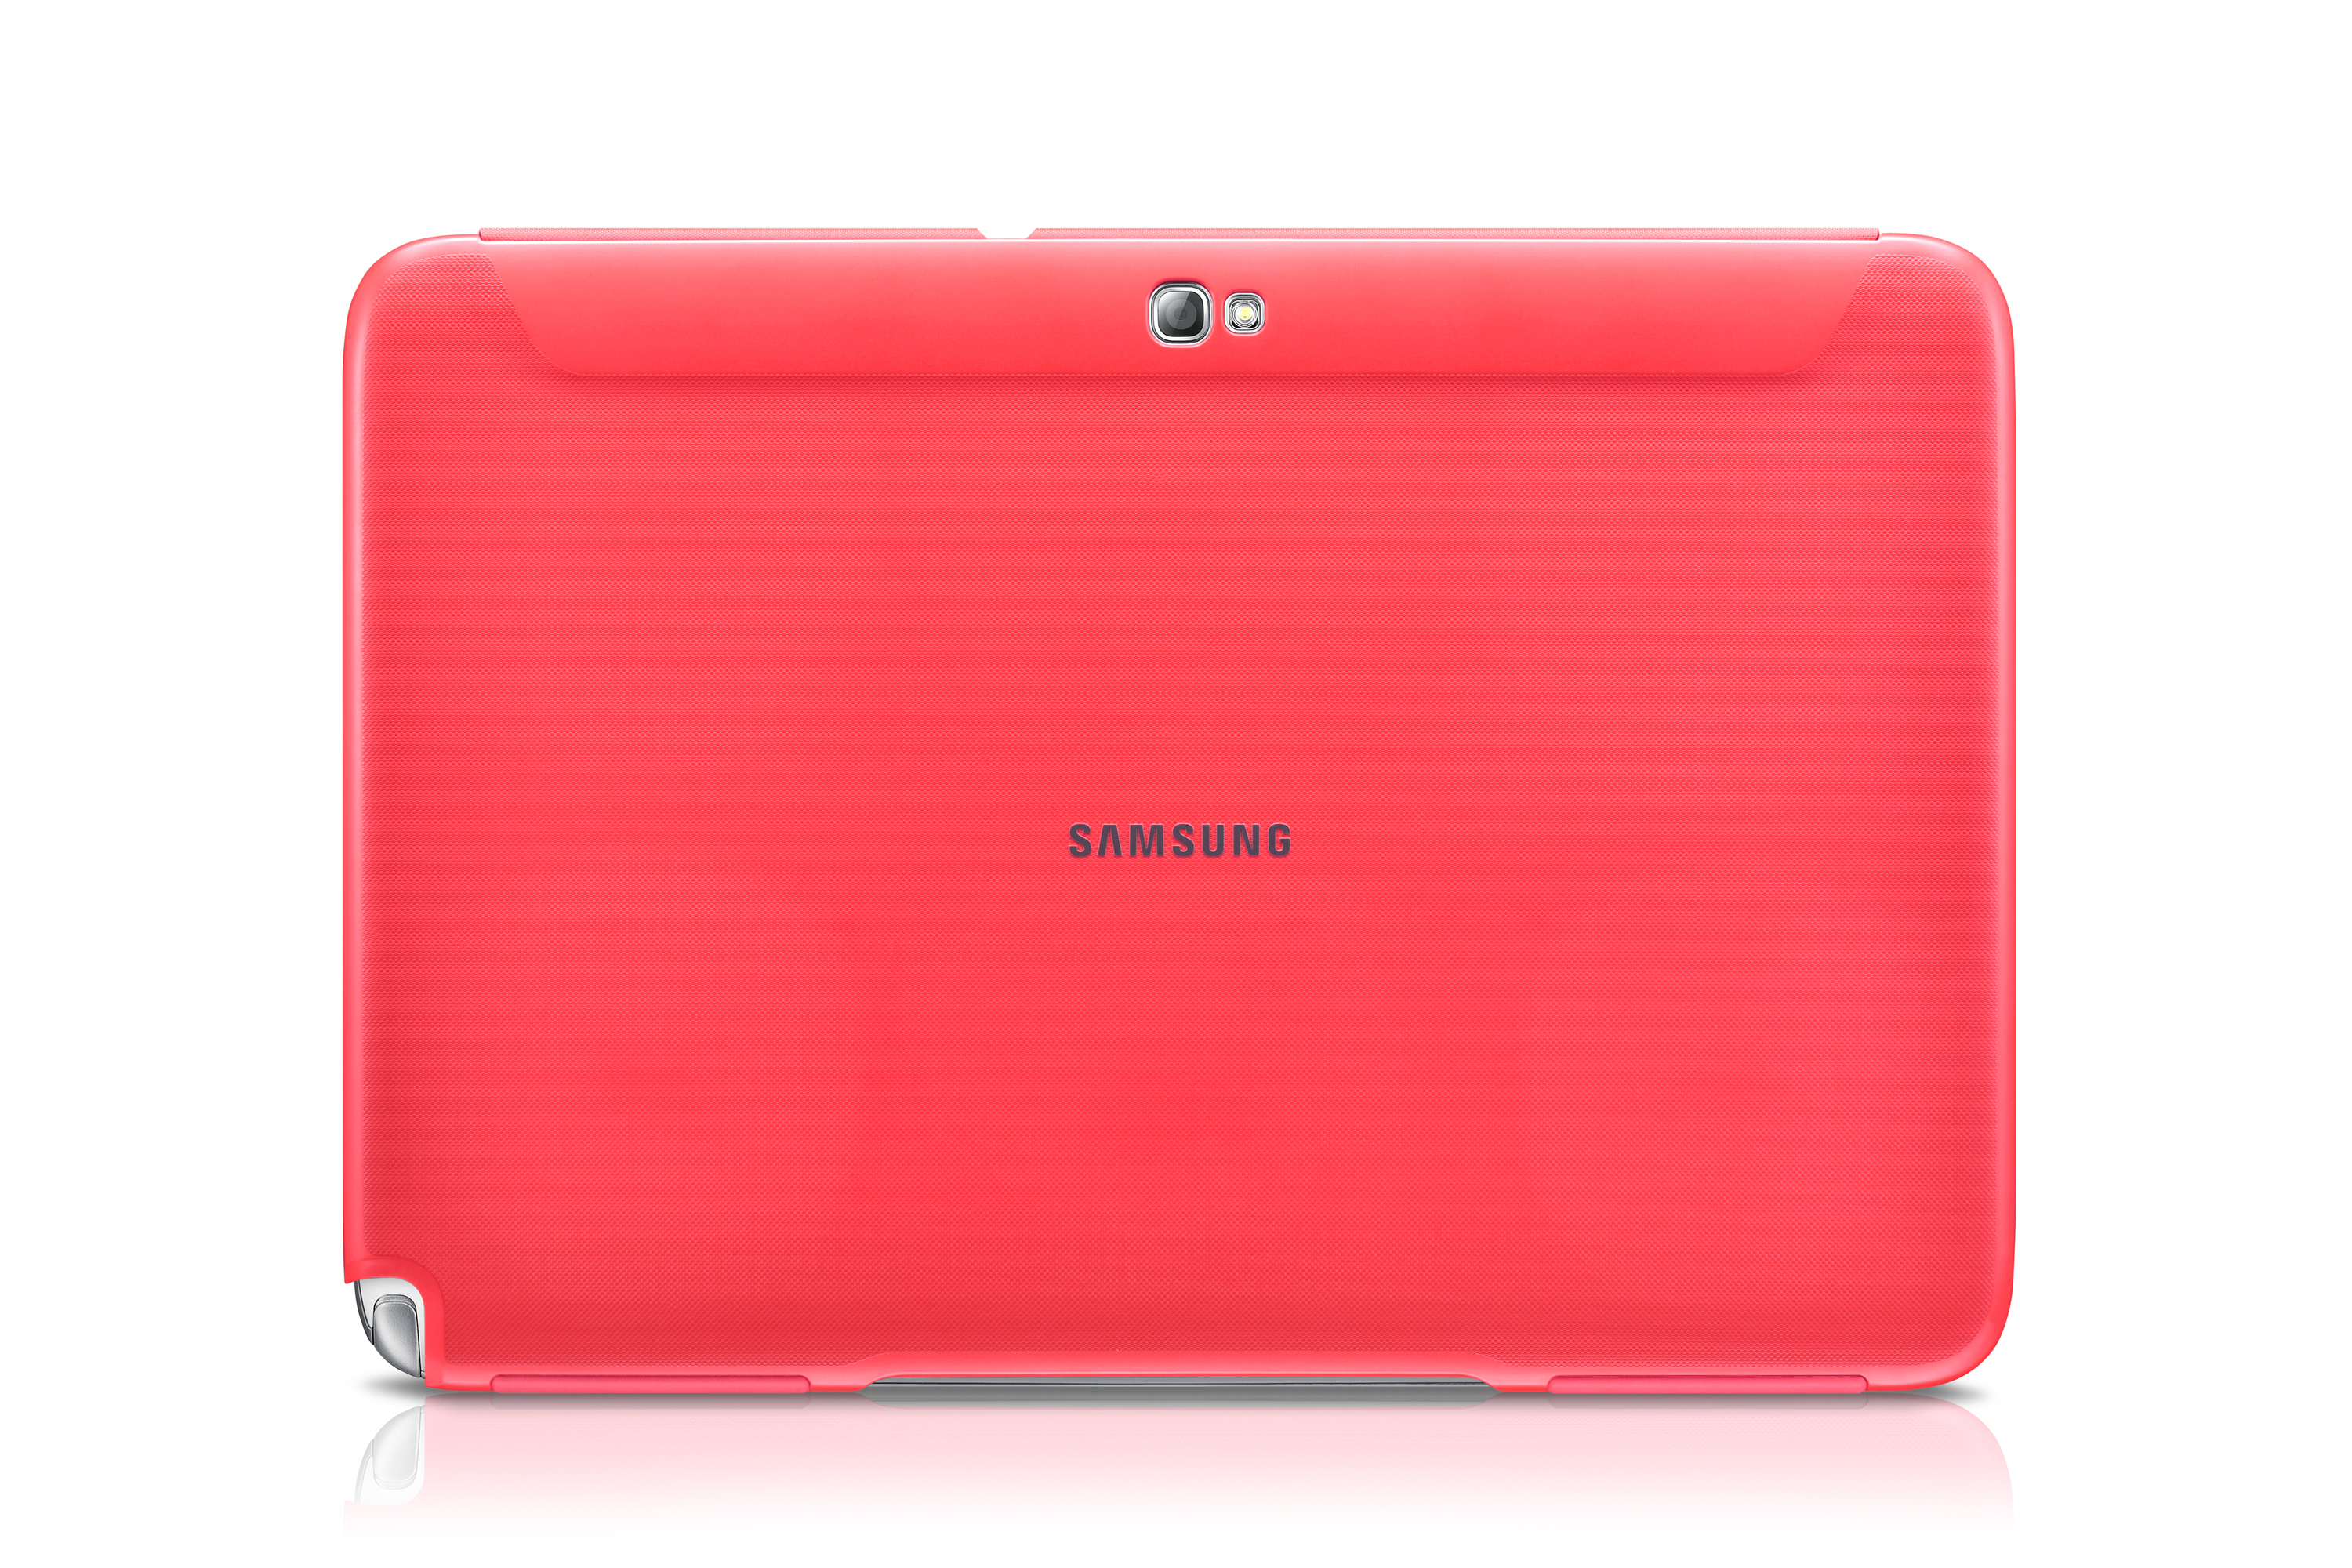 Funda para tablet galaxy note 10 1 precios accesorios de tablets baratos - Funda galaxy tab 3 10 1 ...